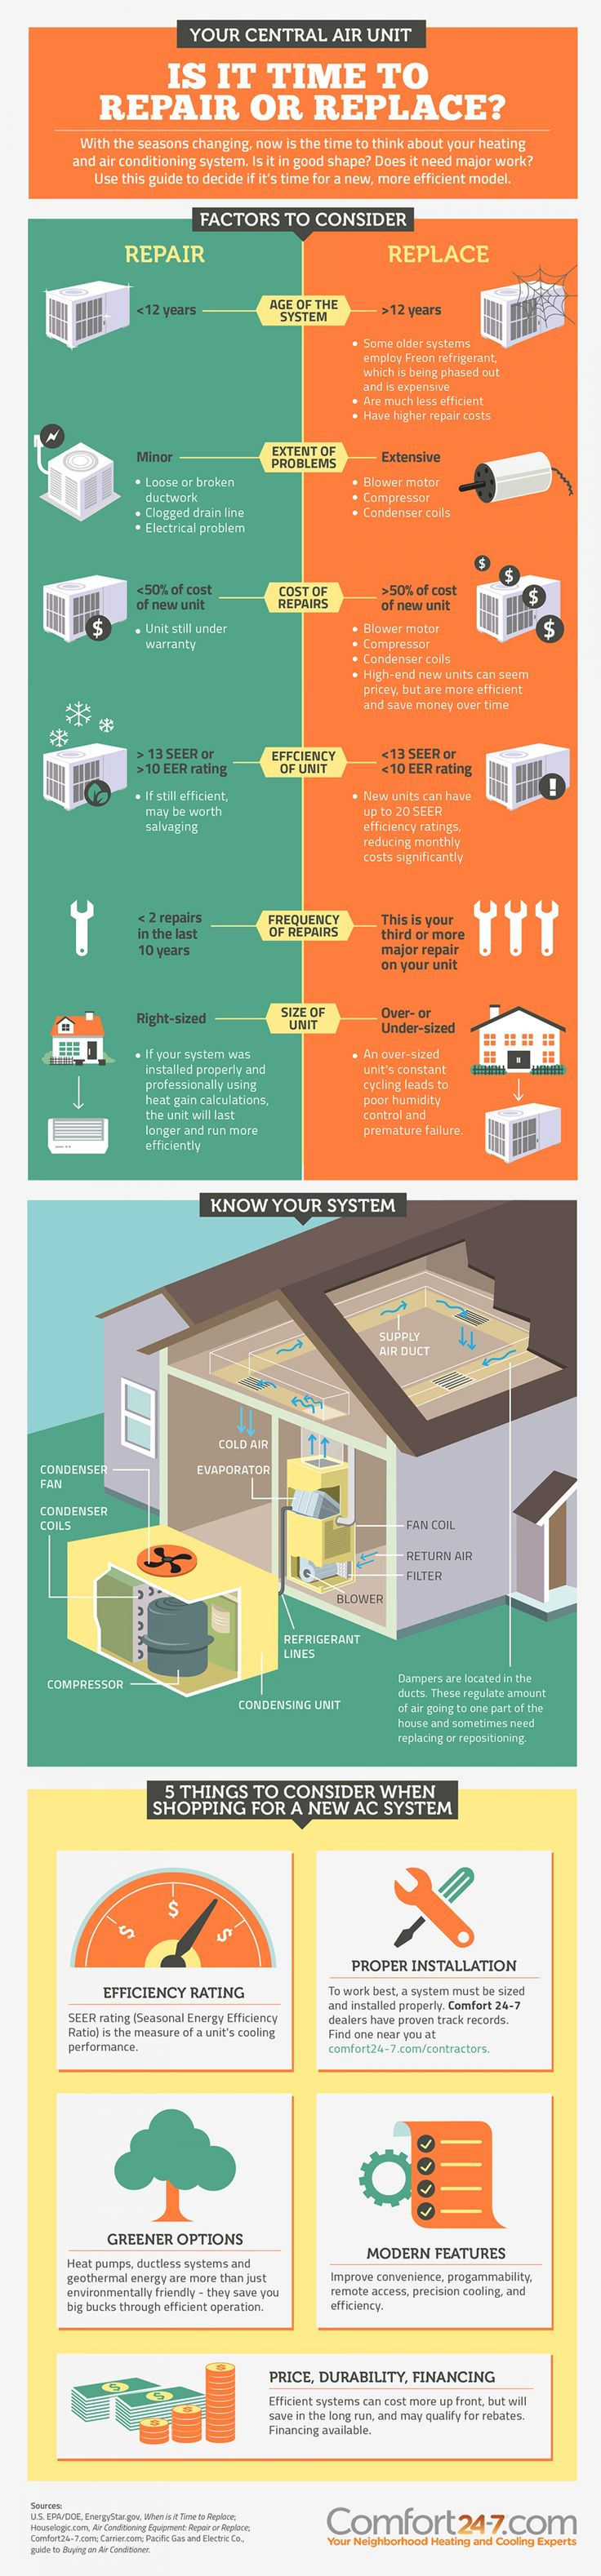 Is It Time to Repair or Replace air conditioning system? Infographic